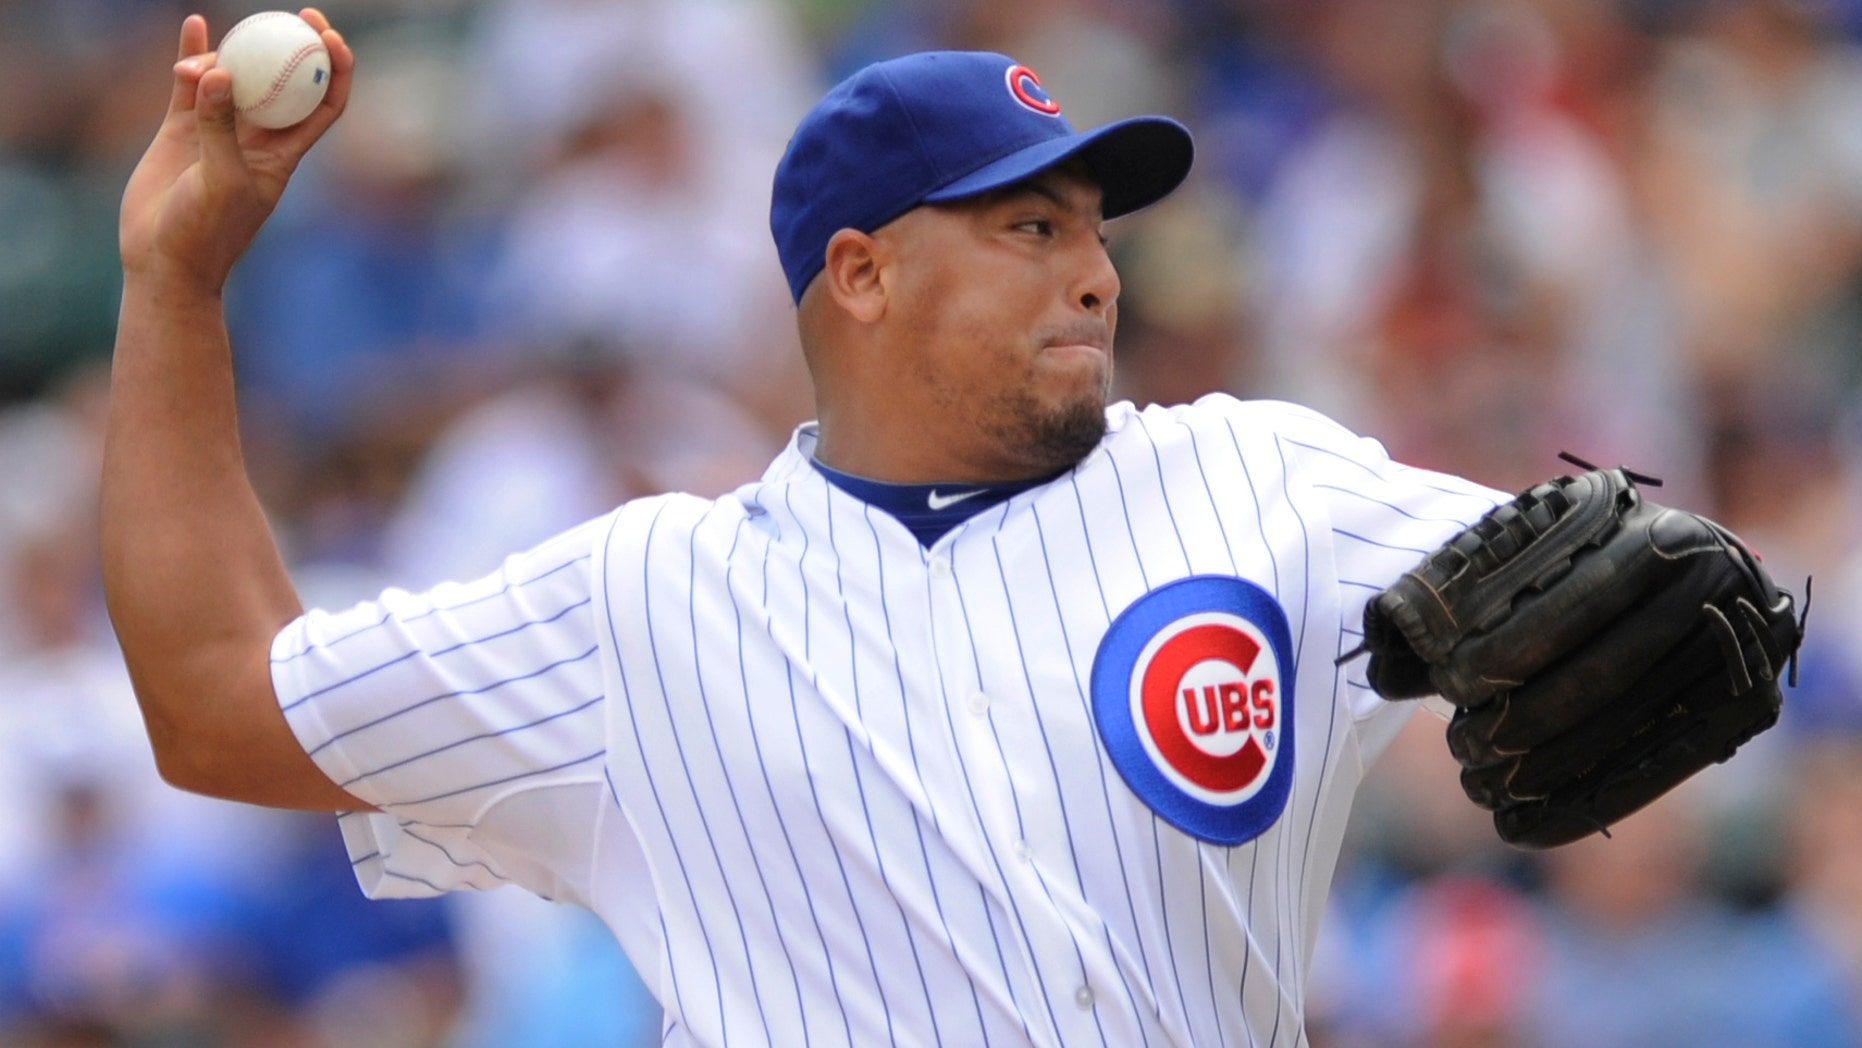 FILE - In this Aug. 6, 2011, file photo, Chicago Cubs starter Carlos Zambrano delivers a pitch against the Cincinnati Reds during the first inning of a baseball game in Chicago. A person familiar with the negotiations says the Chicago Cubs have reached a deal to trade pitcher Carlos Zambrano to the Miami Marlins for pitcher Chris Volstad. The person confirmed the deal to The Associated Press on Wednesday, Jan. 4, 2012, on condition of anonymity because the teams hadn't announced a trade. (AP Photo/Paul Beaty, File)